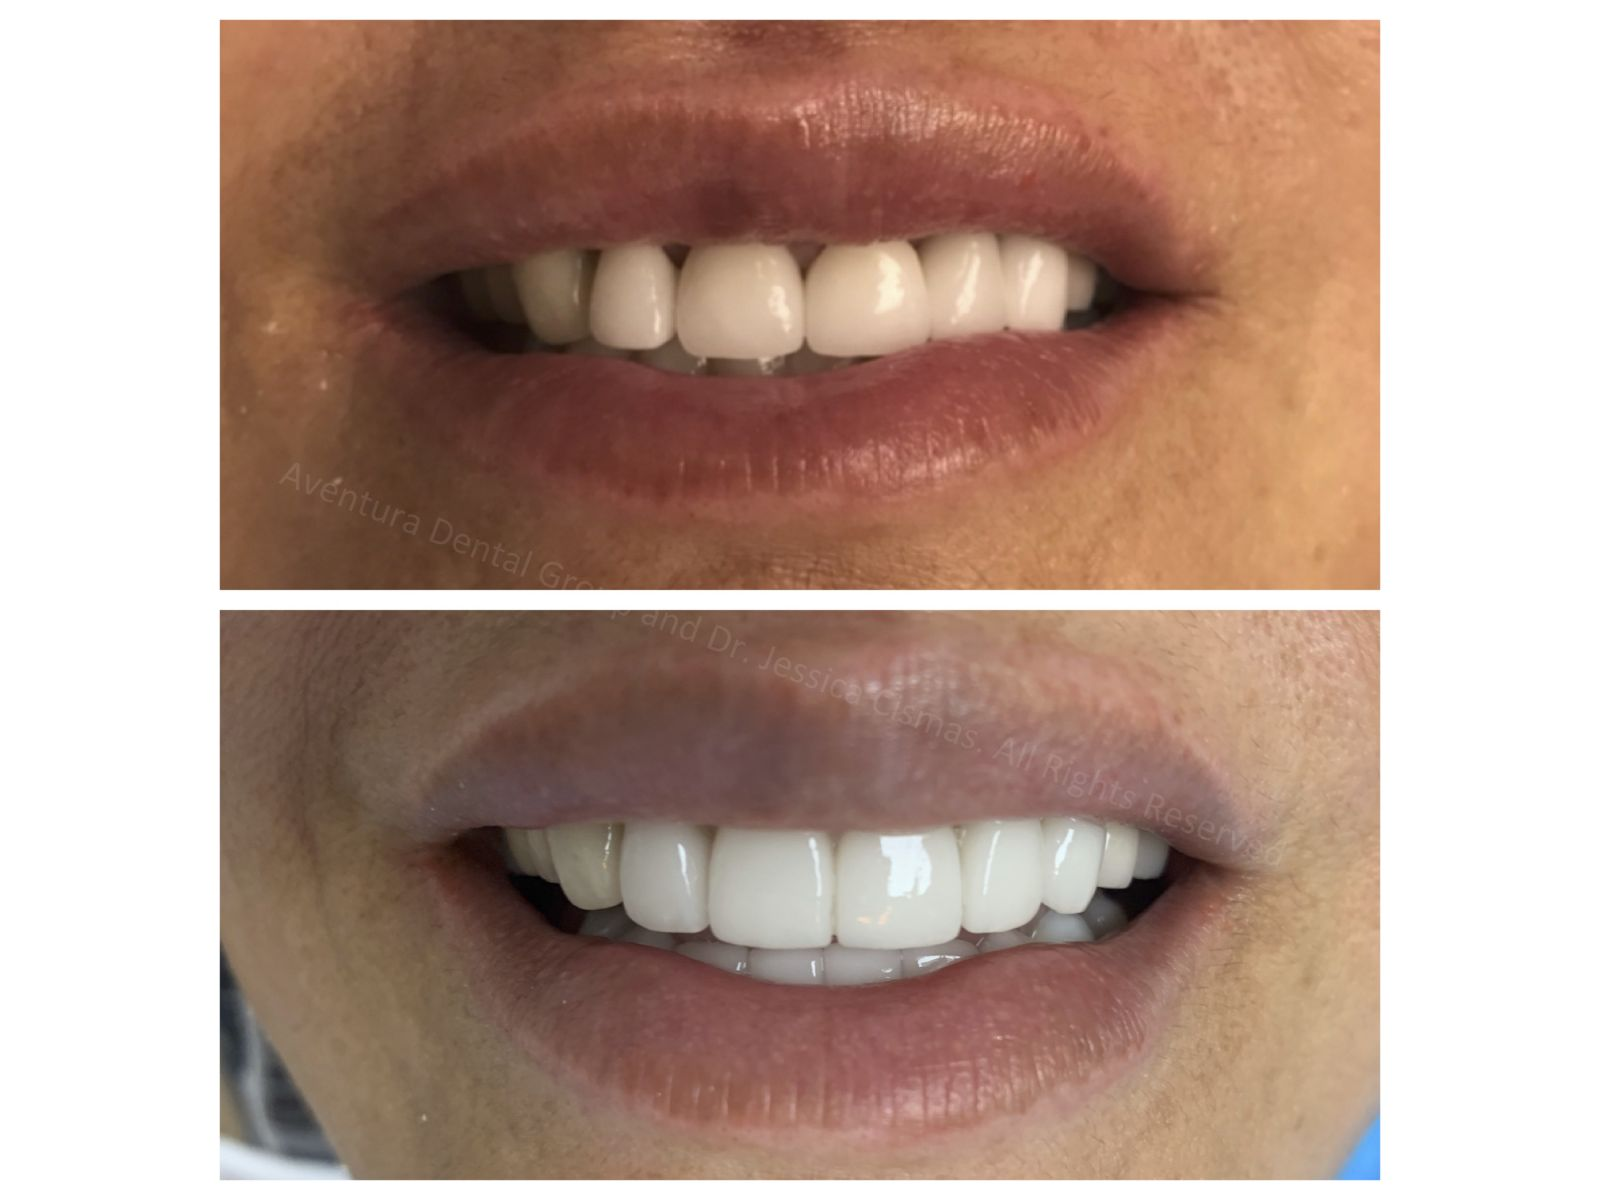 Dr. Jessica Cismas outdid herself again with another full mouth porcelain veneer case. She created a long lasting beautiful smile for this patient who absolutely loved the way her teeth look now. For a limited time Dr. Jessica Cismas will provide cosmetic consultations to the first 50 patients.